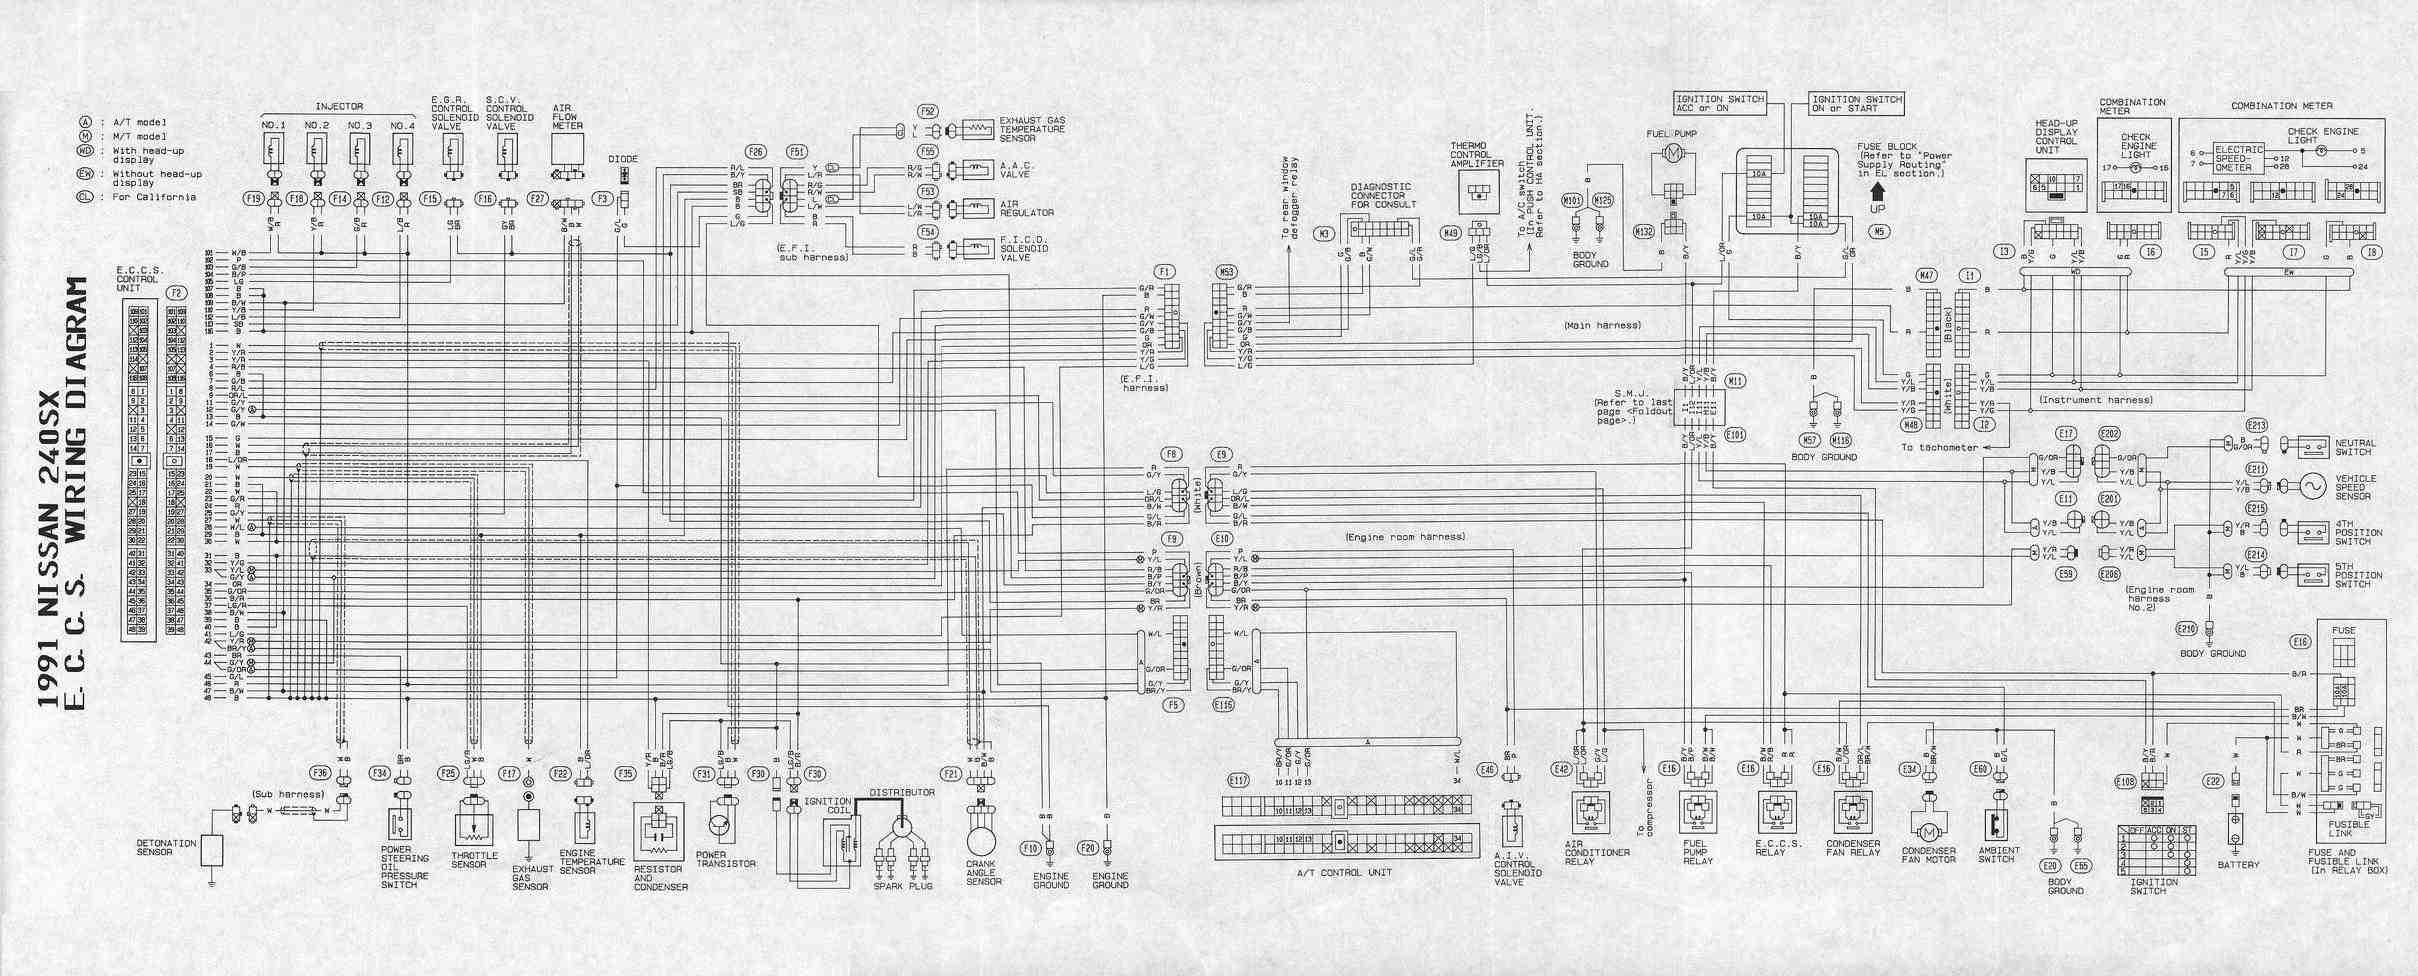 small resolution of 1996 nissan pickup wiring diagram free download 20 16 ulrich temme